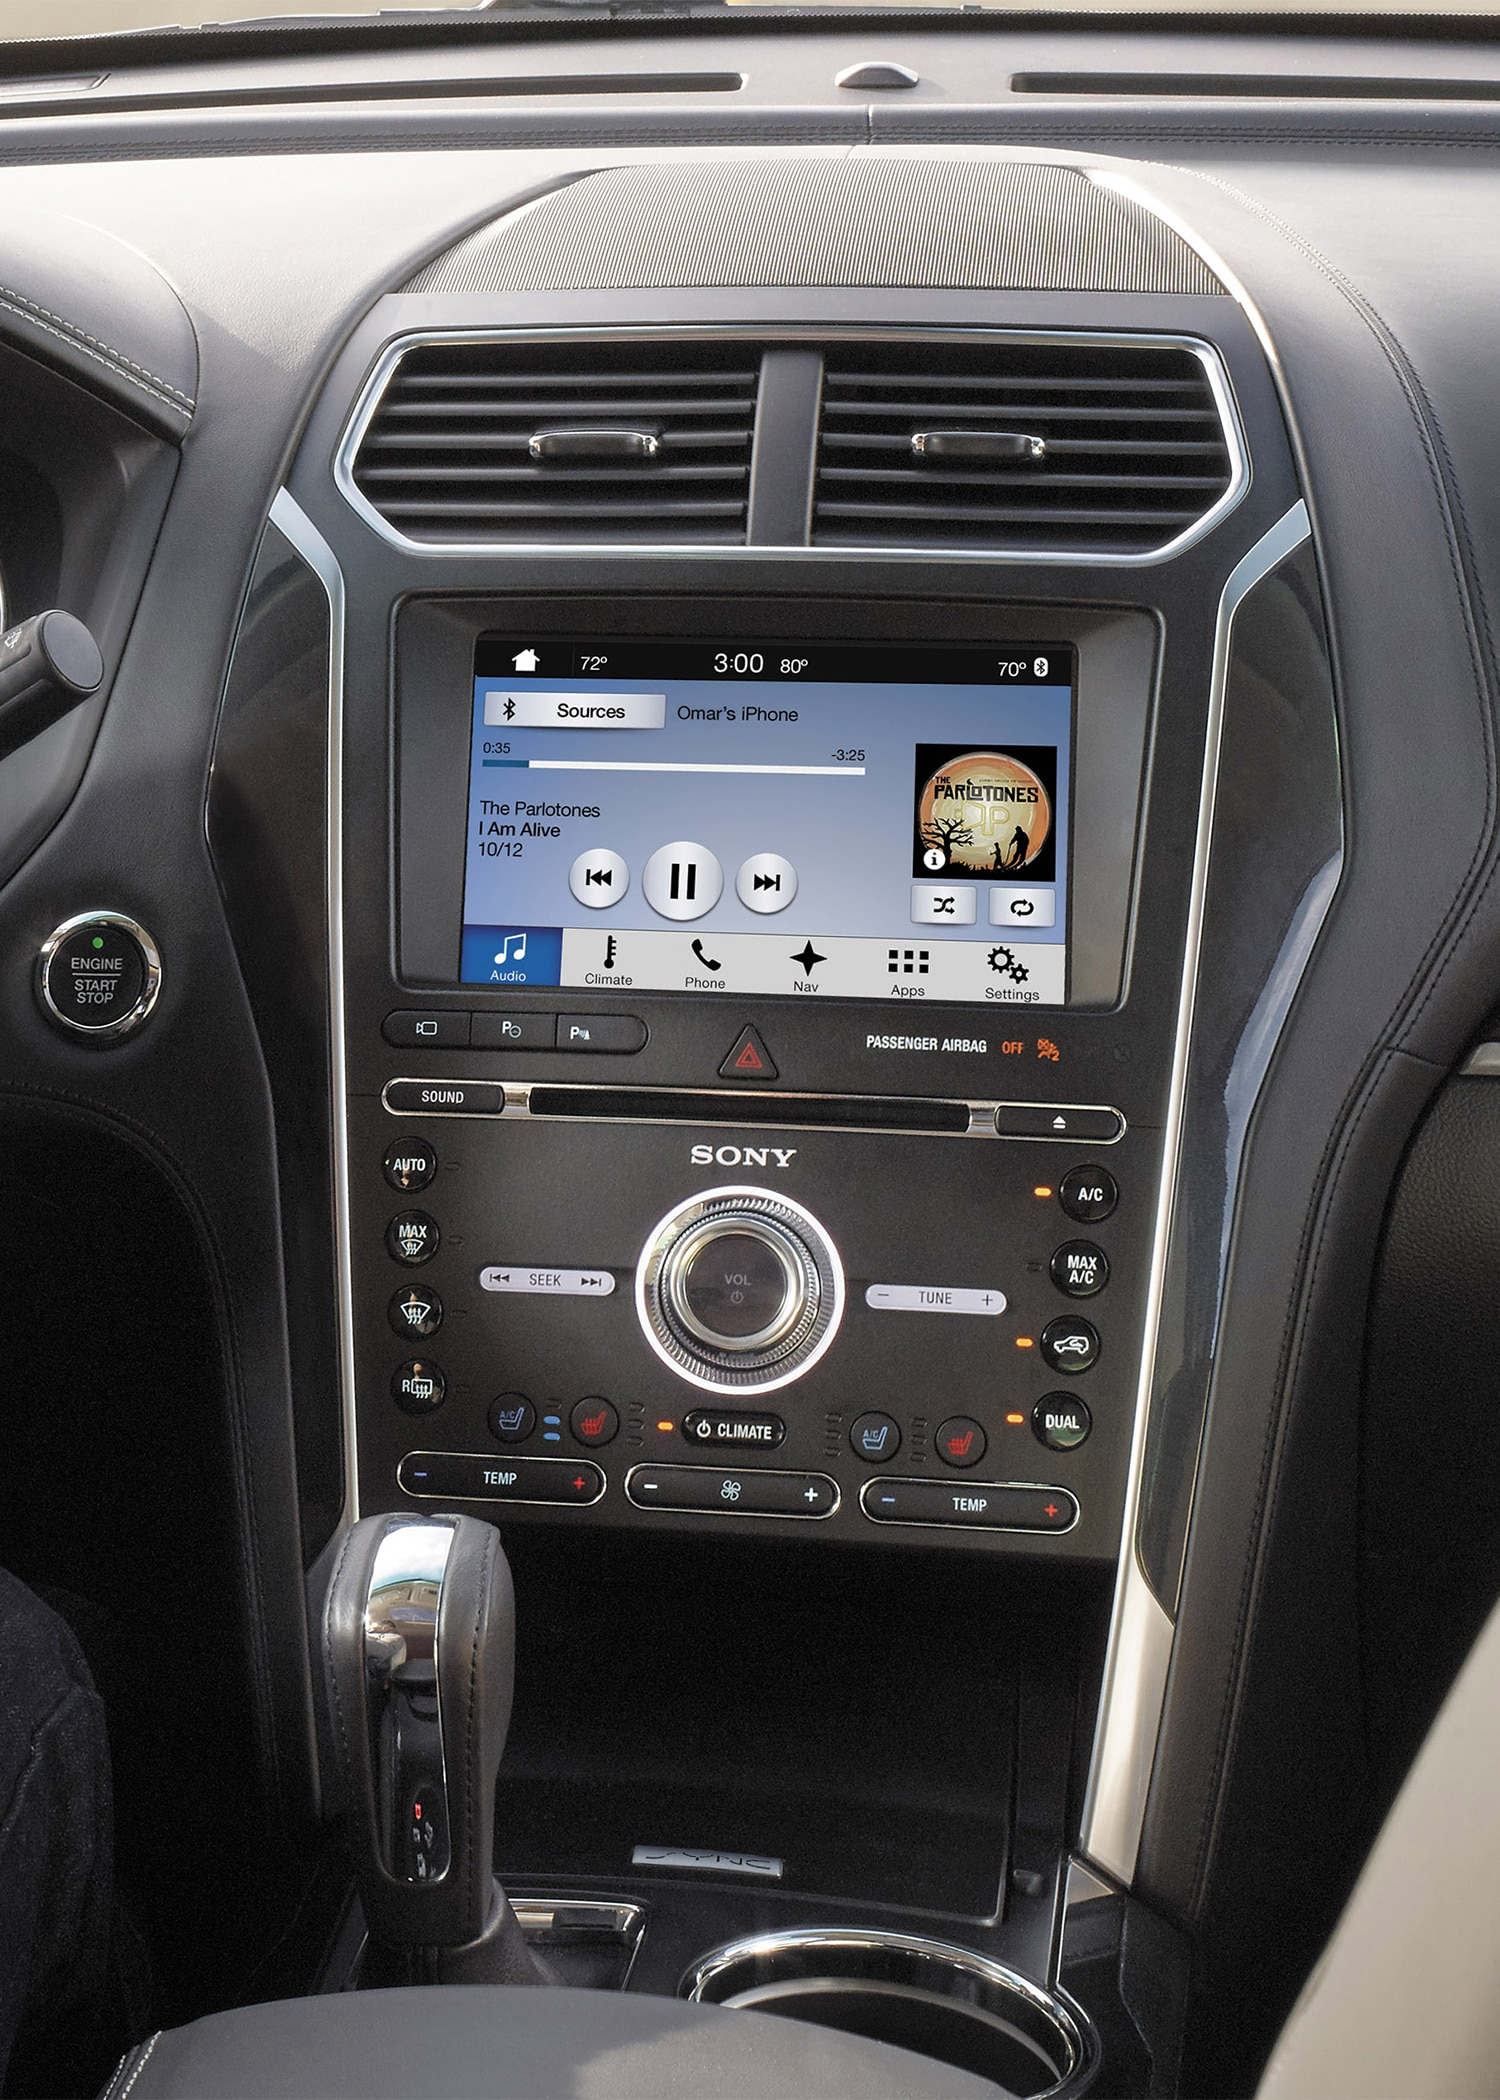 2018 Ford Taurus further 311 Black Ford Explorer Sport Trac Lifted Wallpaper 6 in addition Locacao De Limousines E Veiculos De Luxo E Aposta De Empresas Nacionais together with How I Keep My Platinum Silver White Leather Seats Clean further 802546. on 04 ford explorer interior